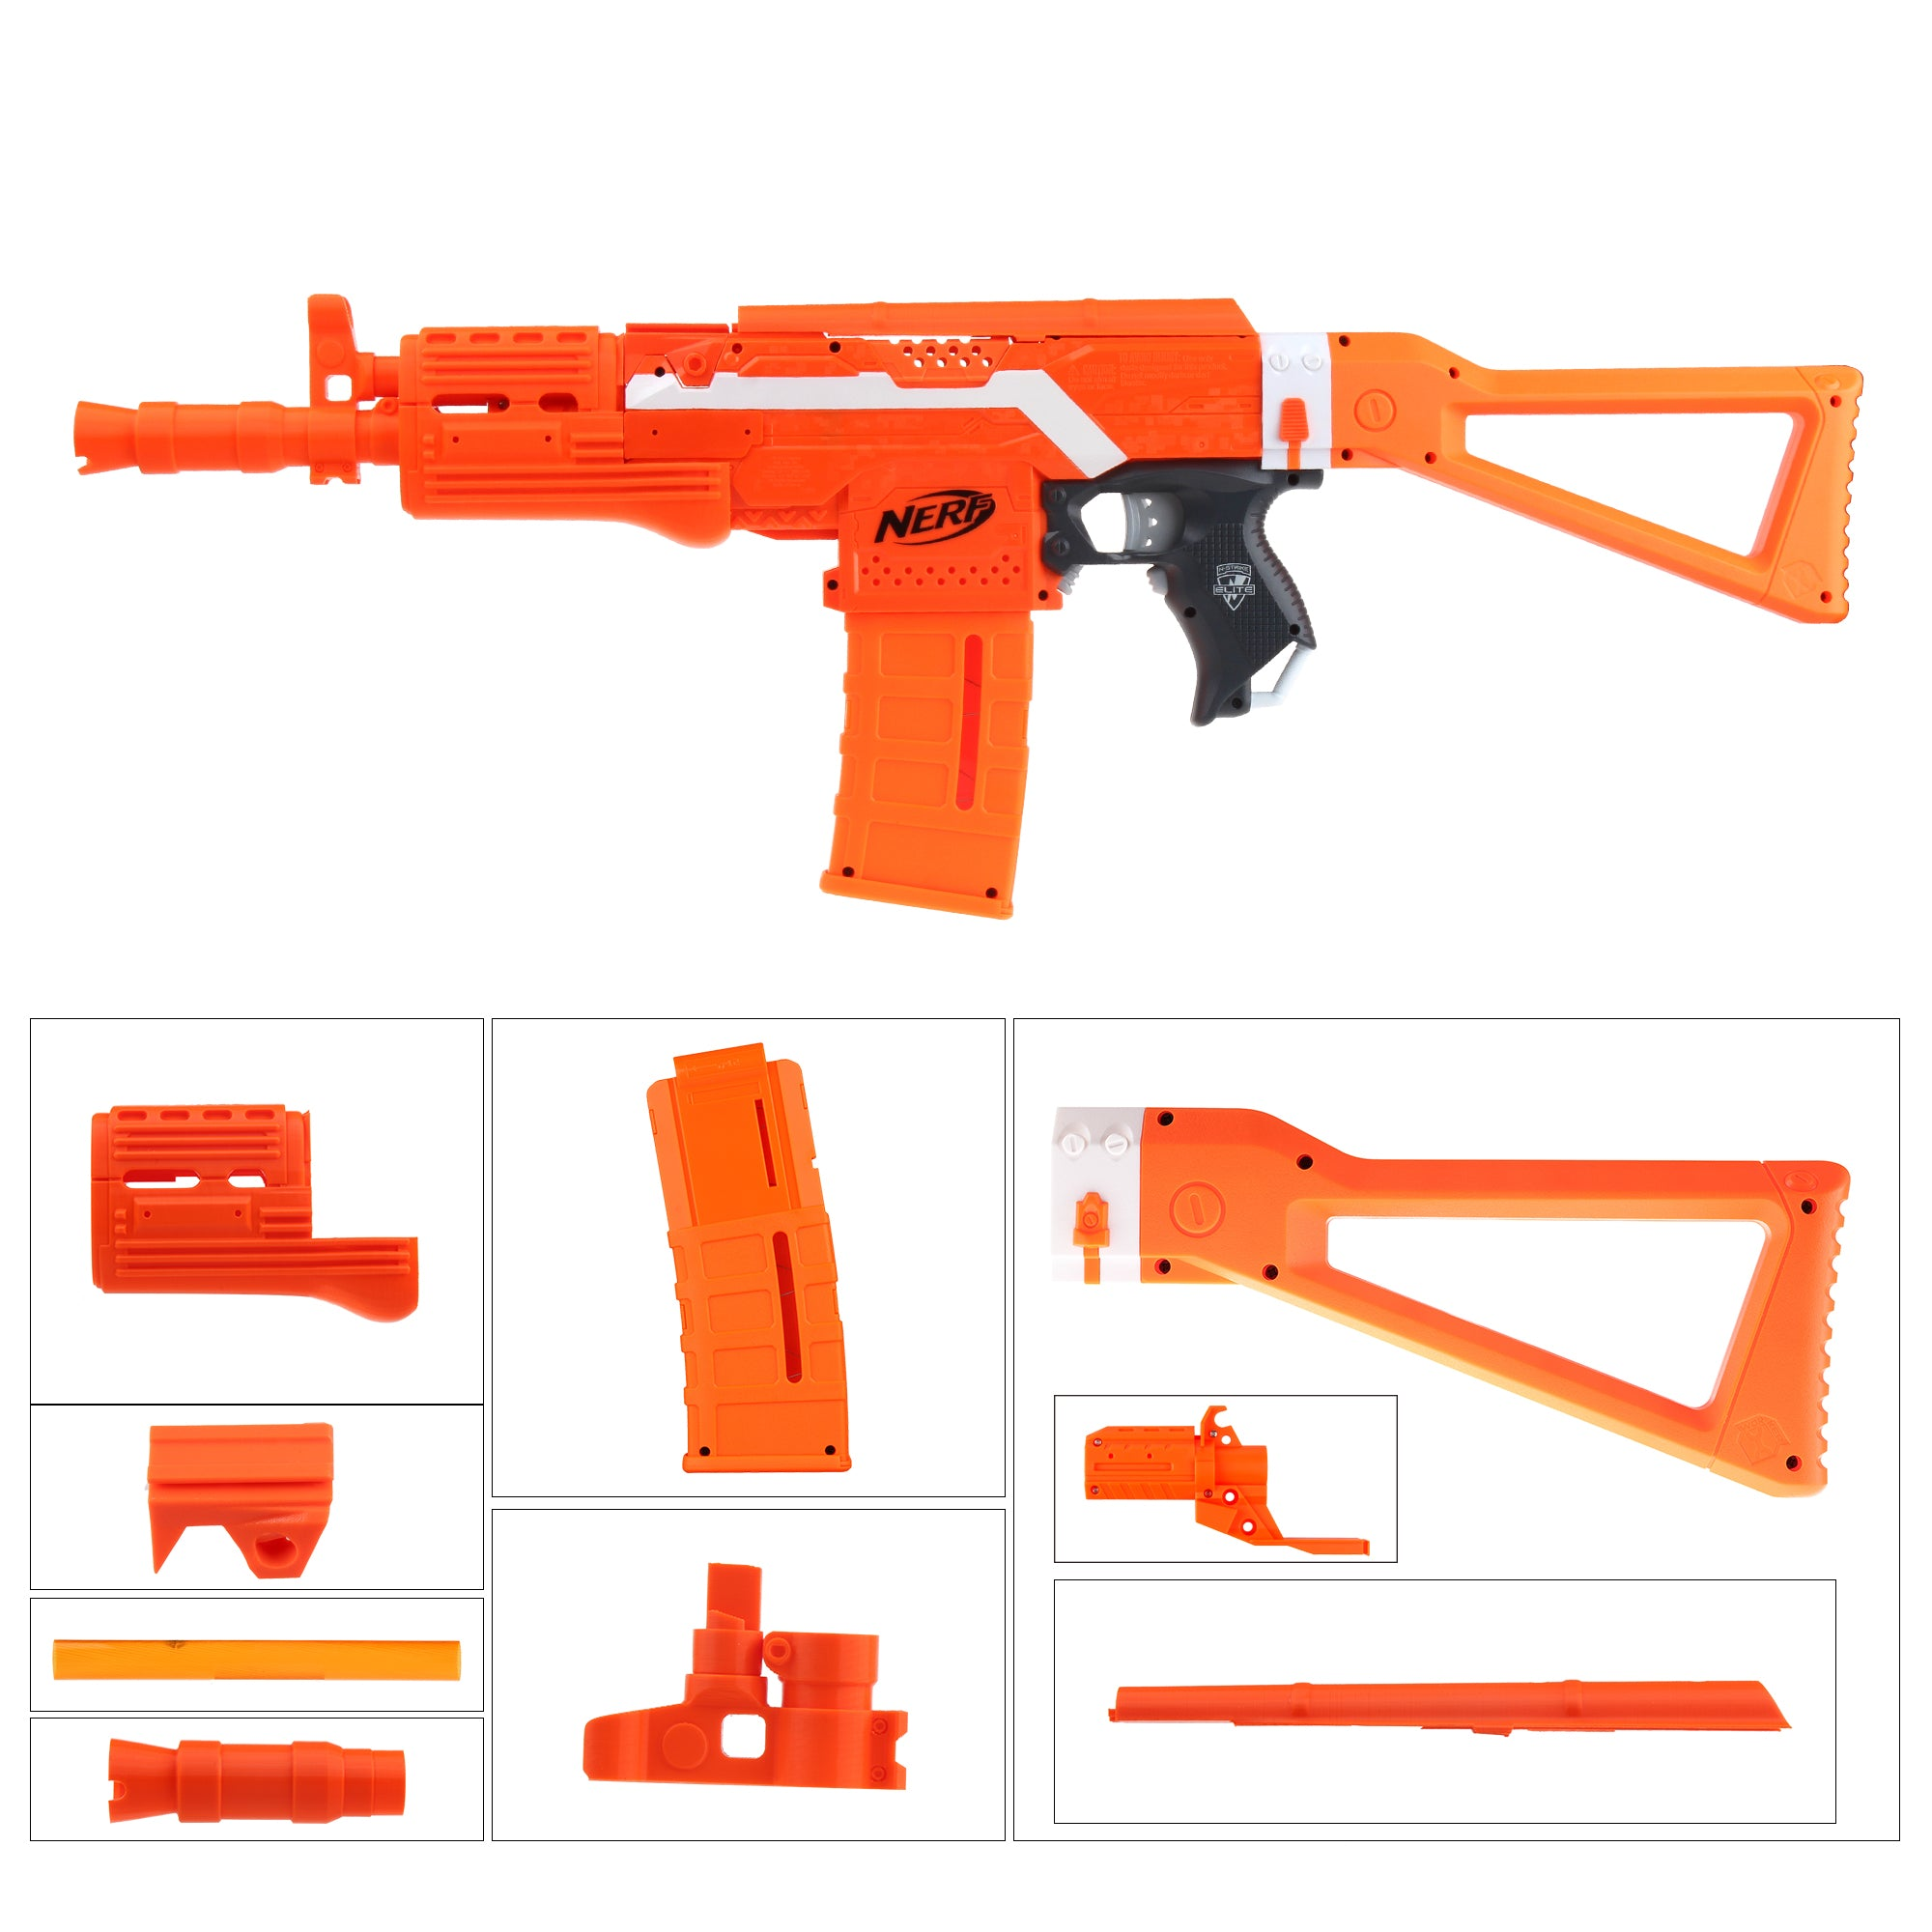 JGCWorker STF-W030-1 NO.105 C Style Mod Kits Set for Nerf N-Strike Elite Stryfe Blaster - Nerf Mod Kits -Worker Mod Kits